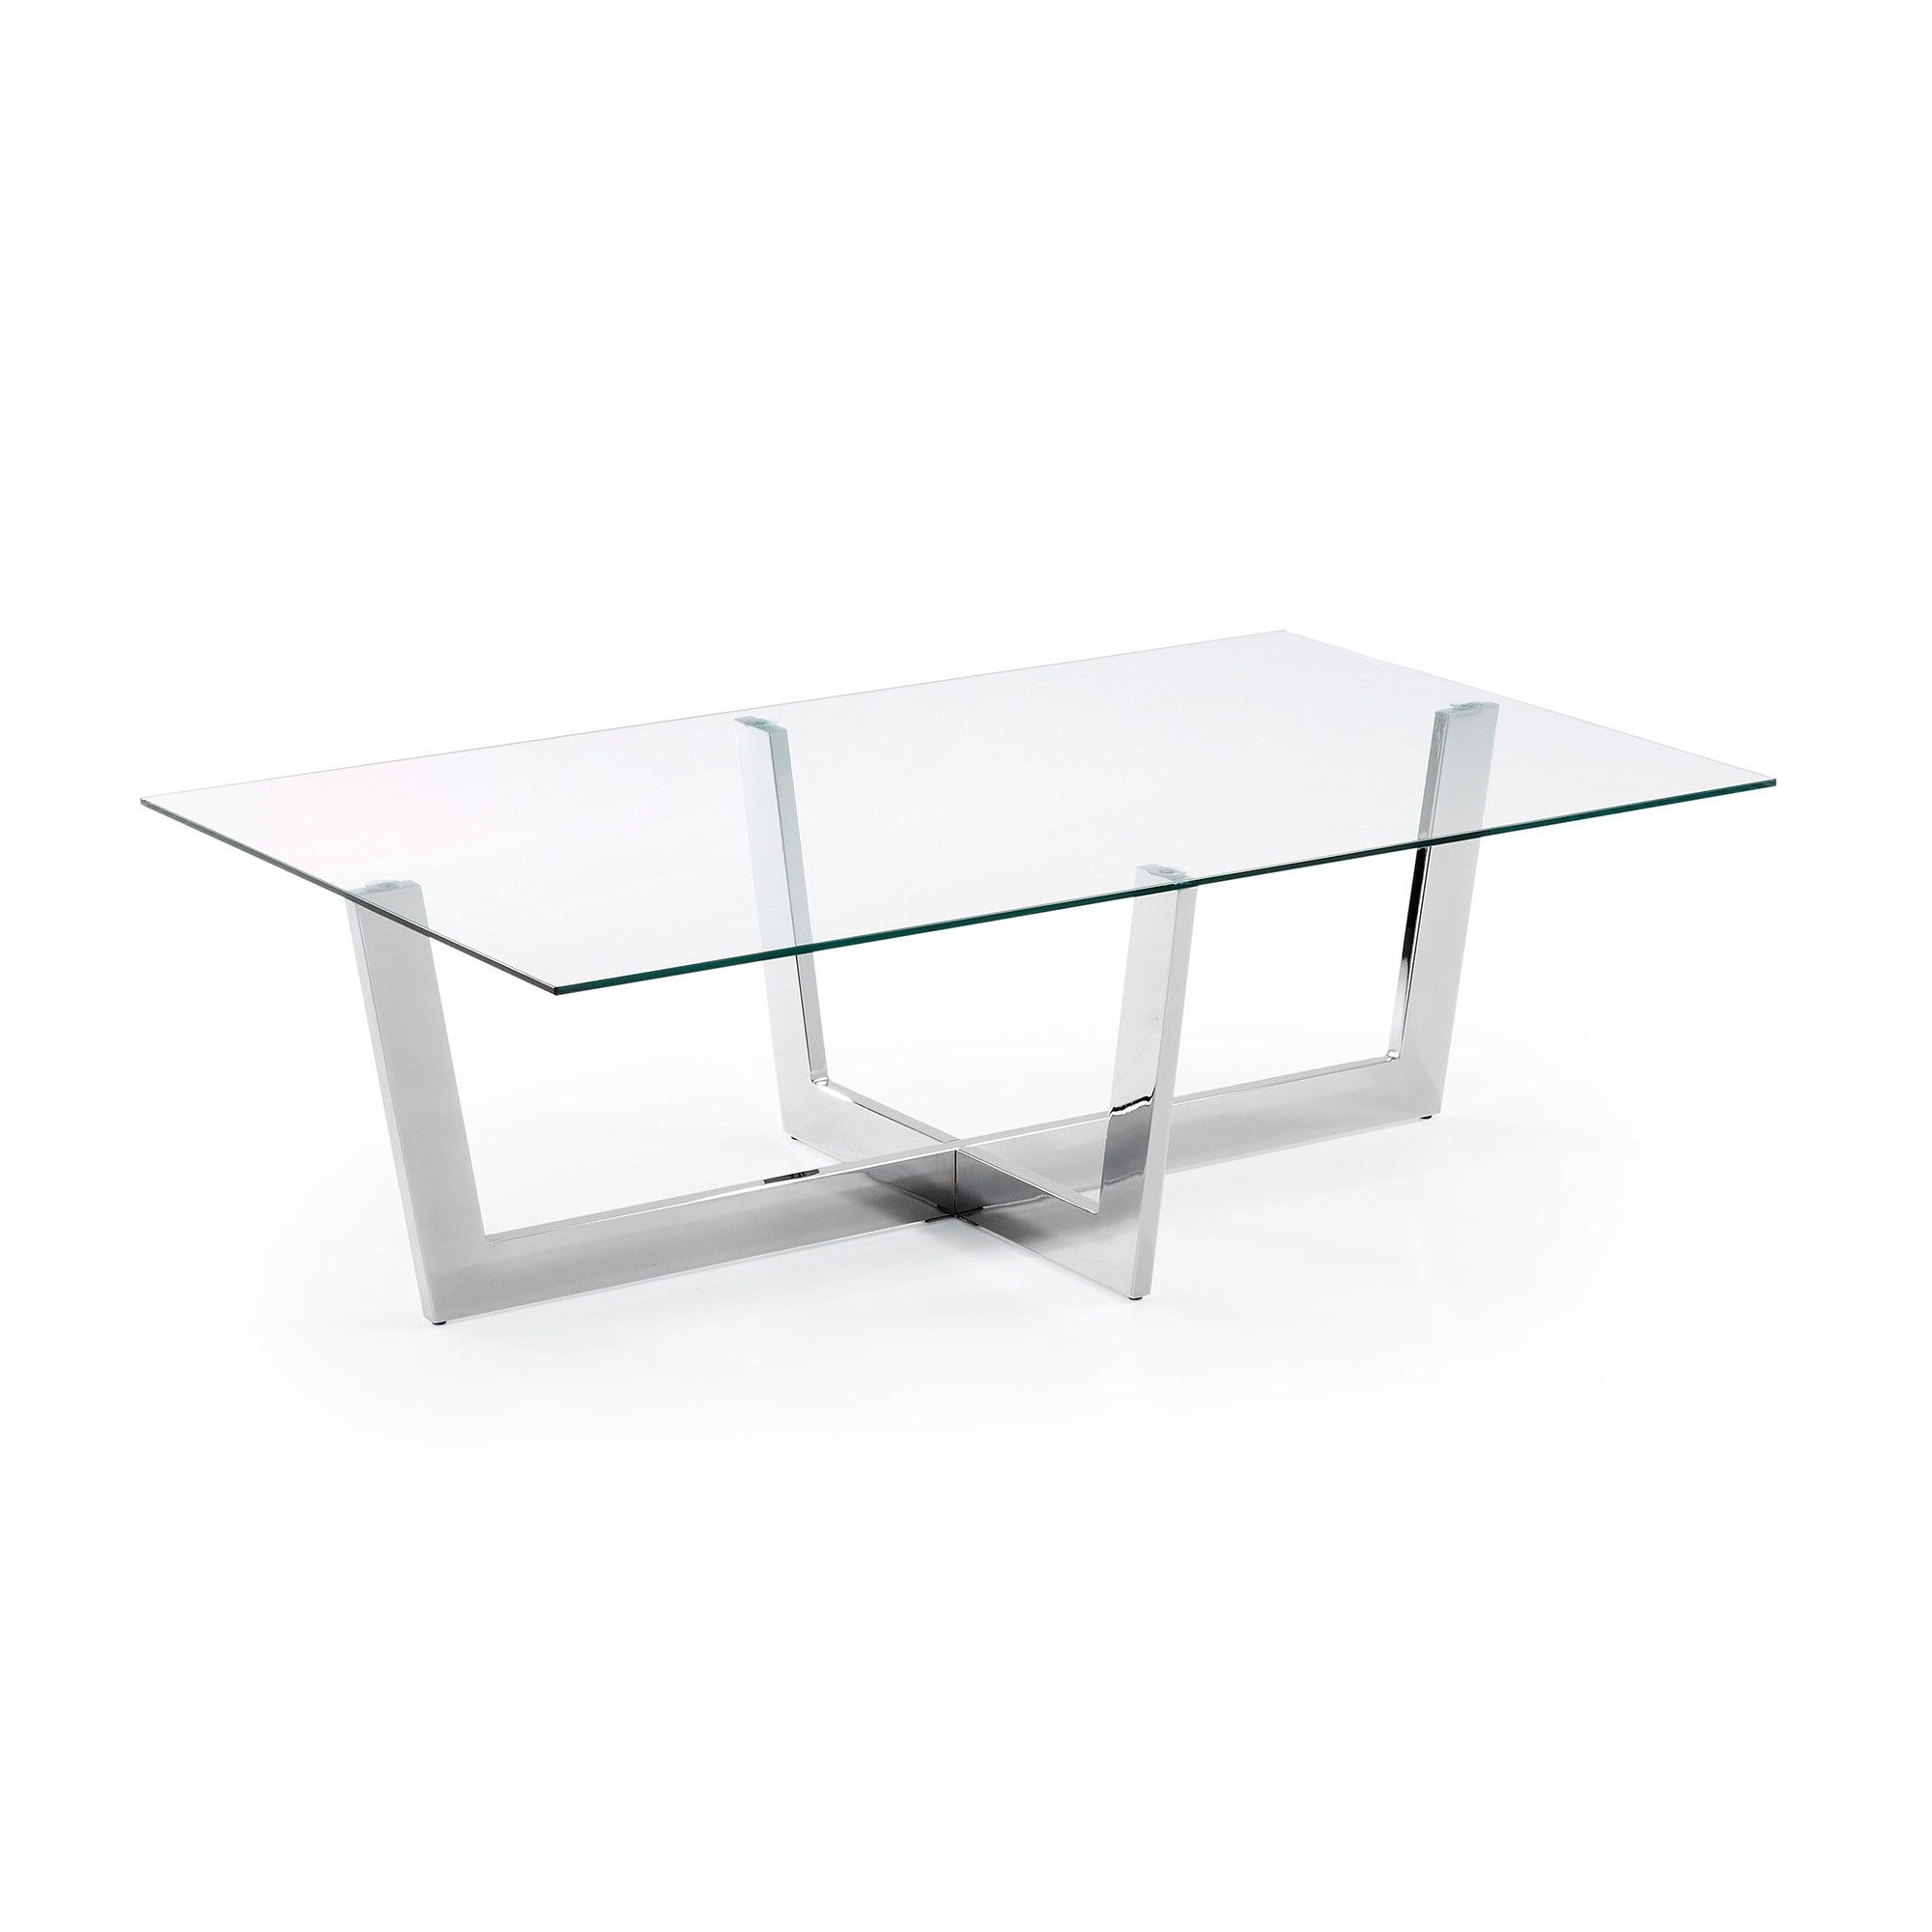 Table Basse Plam Verre Transparent Table Basse Transparente  # Table Basse Transparente